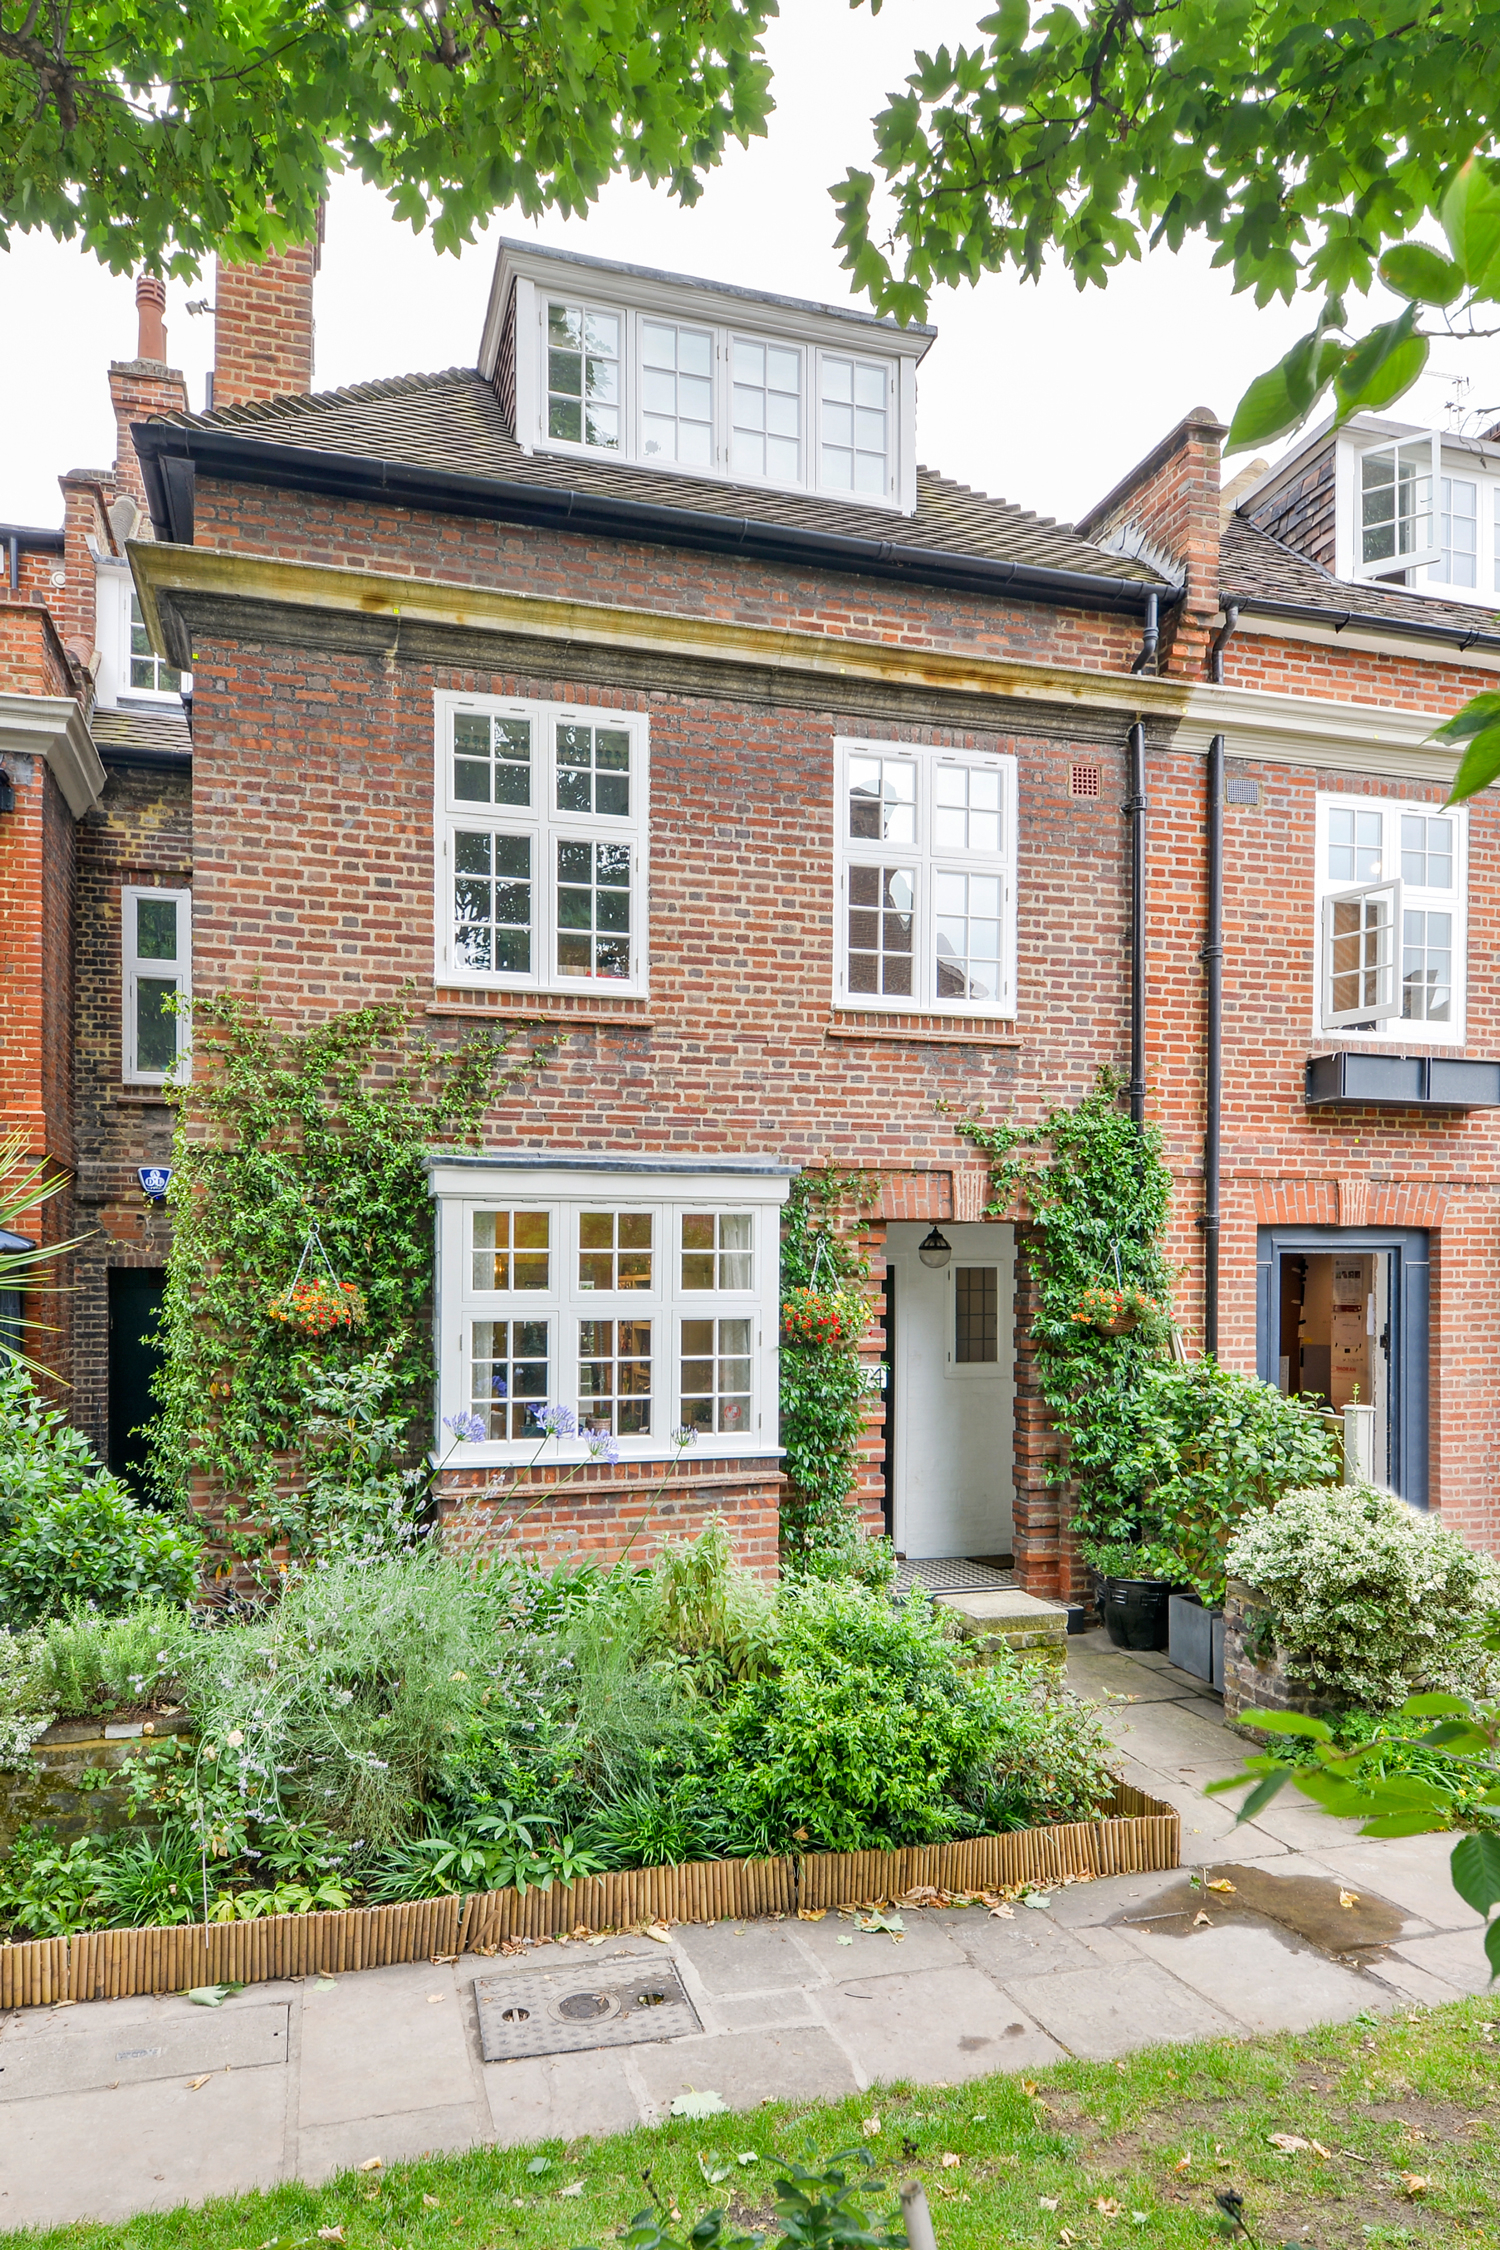 THE LOCATION Chelsea Park Gardens Sits In A Quiet Leafy Hub Of London On Kings Road Around The Corner From Bluebird And Beaufort House